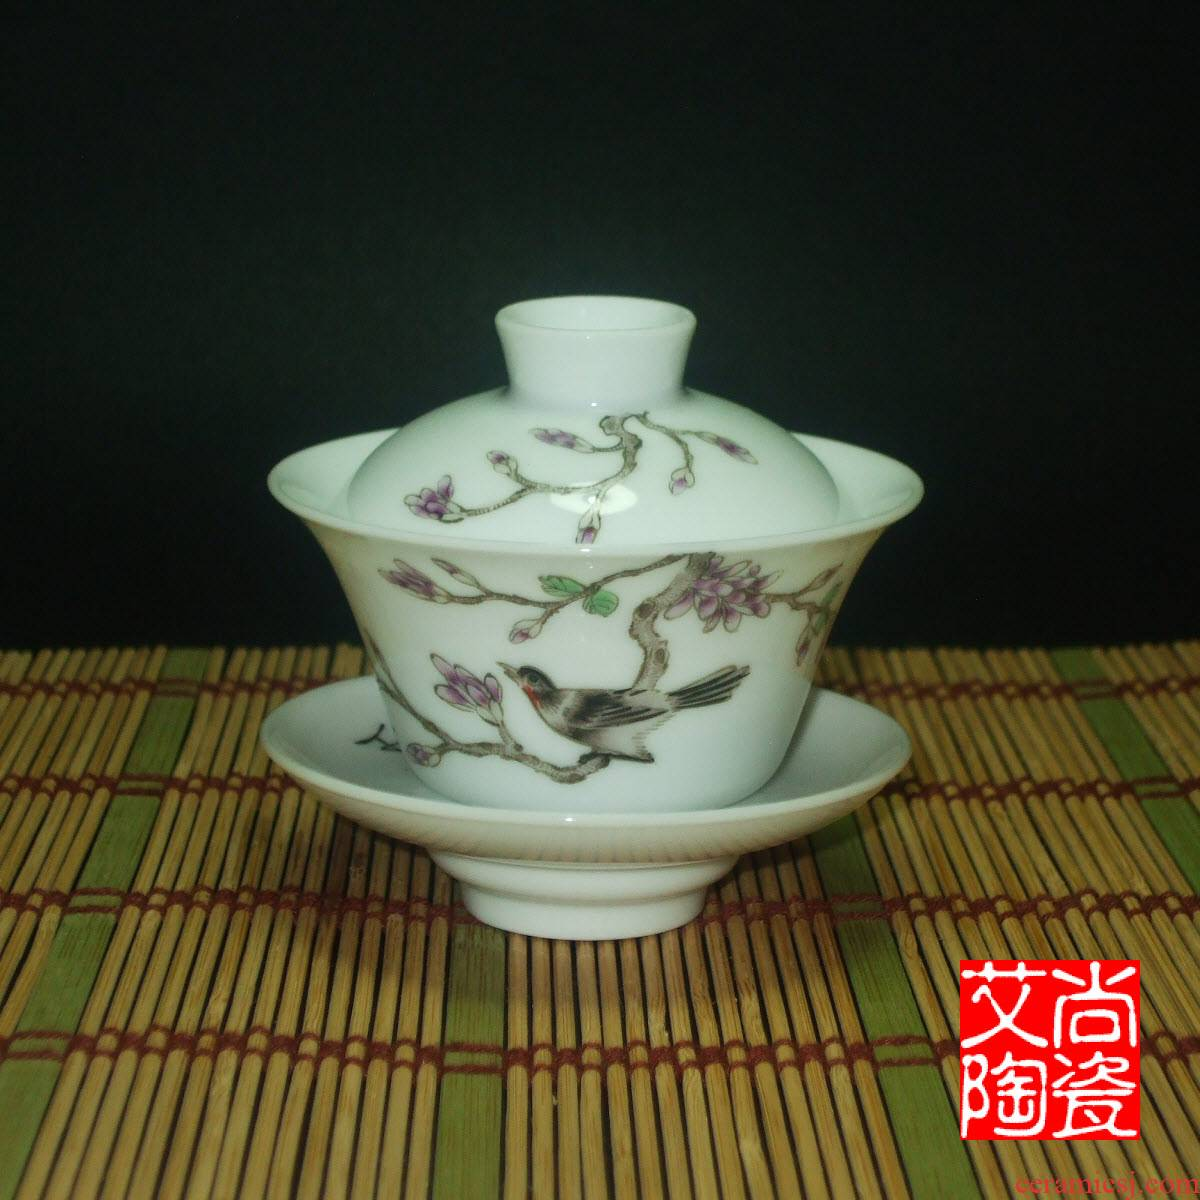 Submerged wood with pastel tureen painting of flowers and cover cup tea bowl archaize three teacups hand - made jingdezhen ceramics